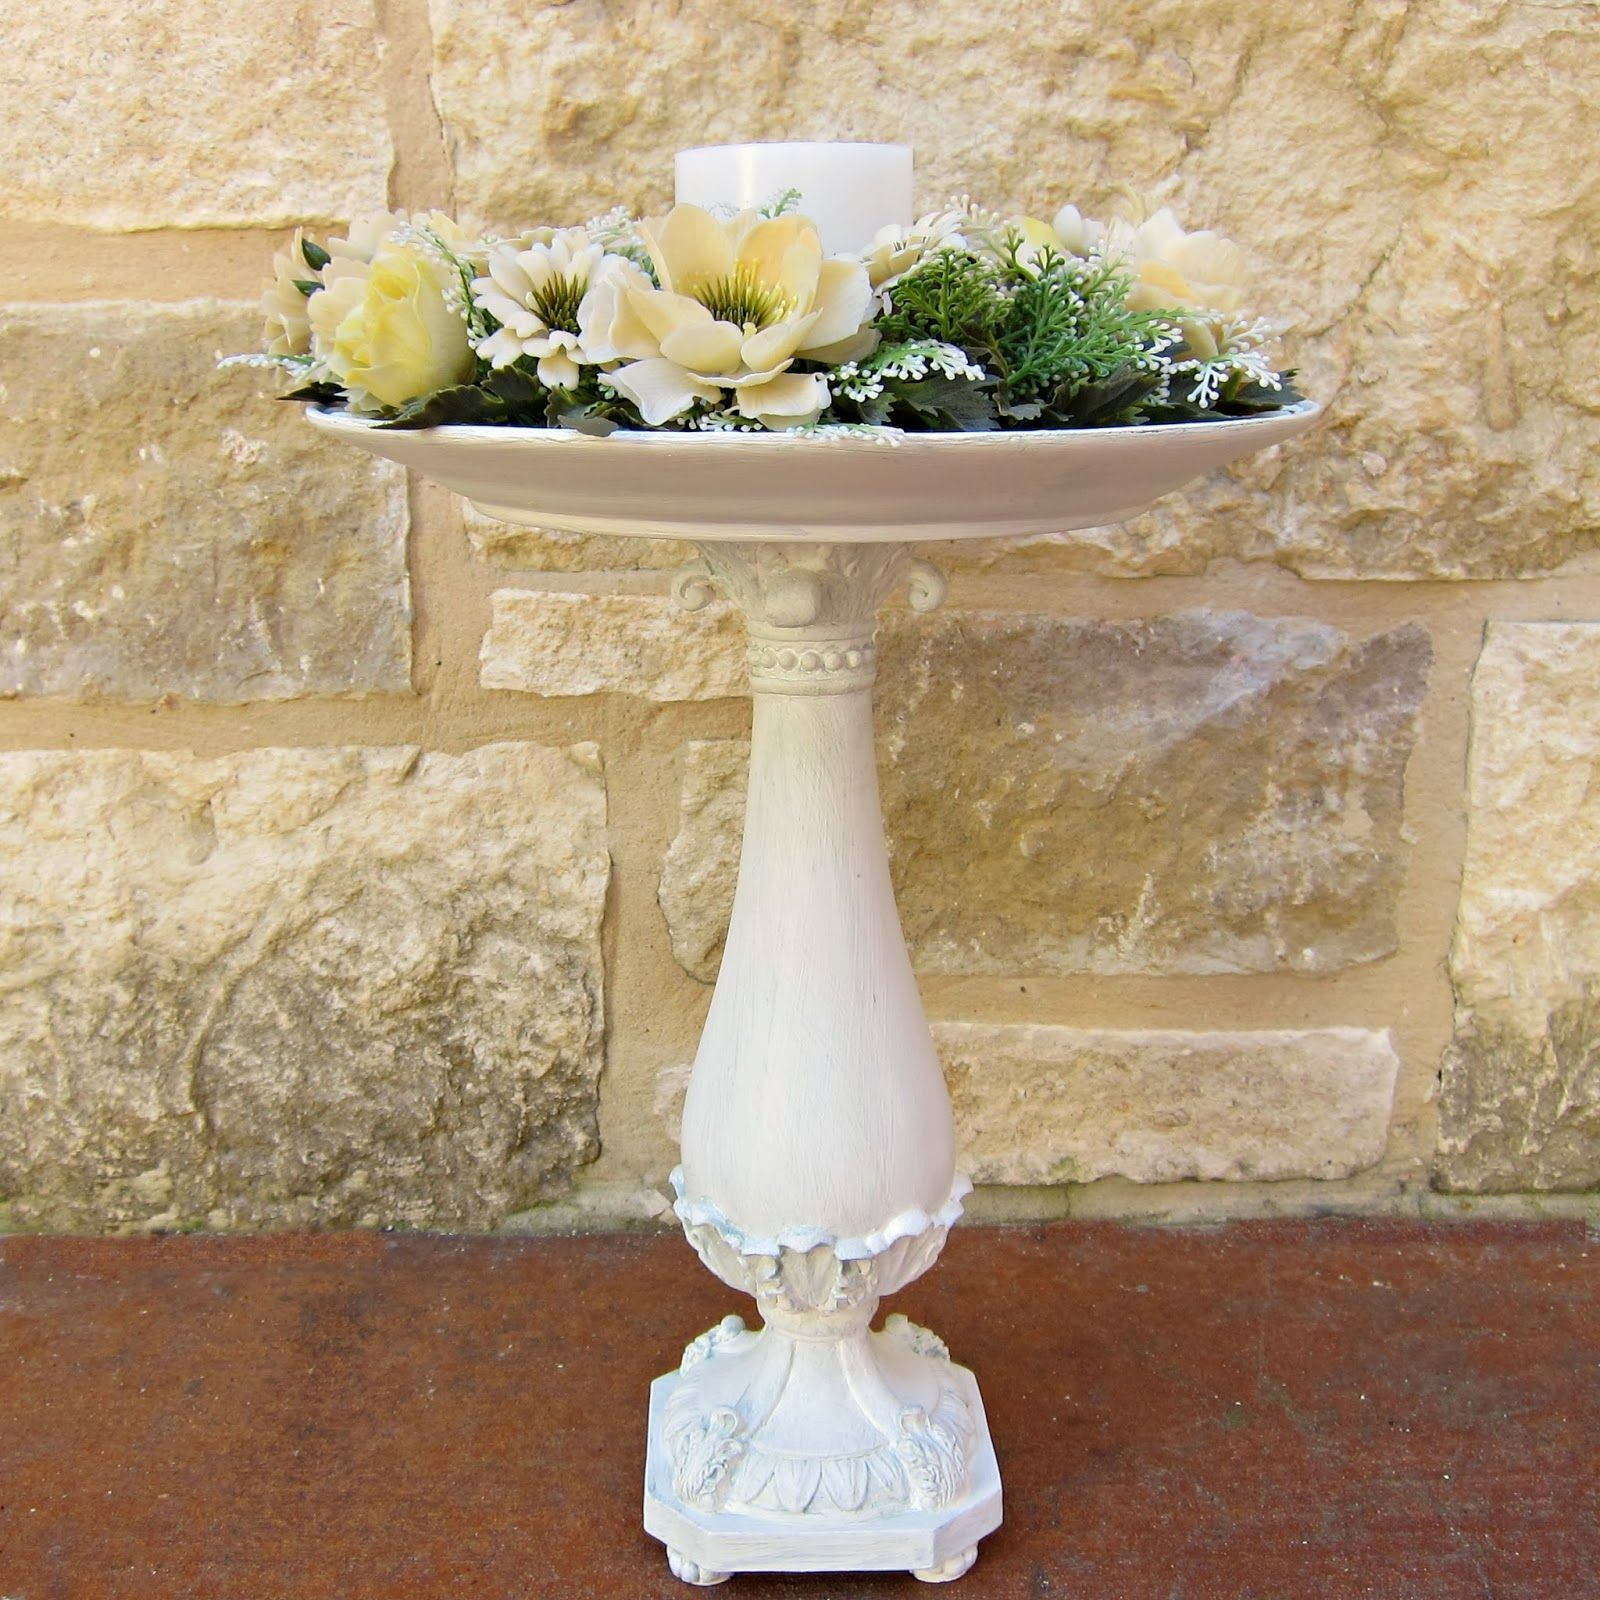 Morenas Corner How To Make Your Own Wedding Centerpiece